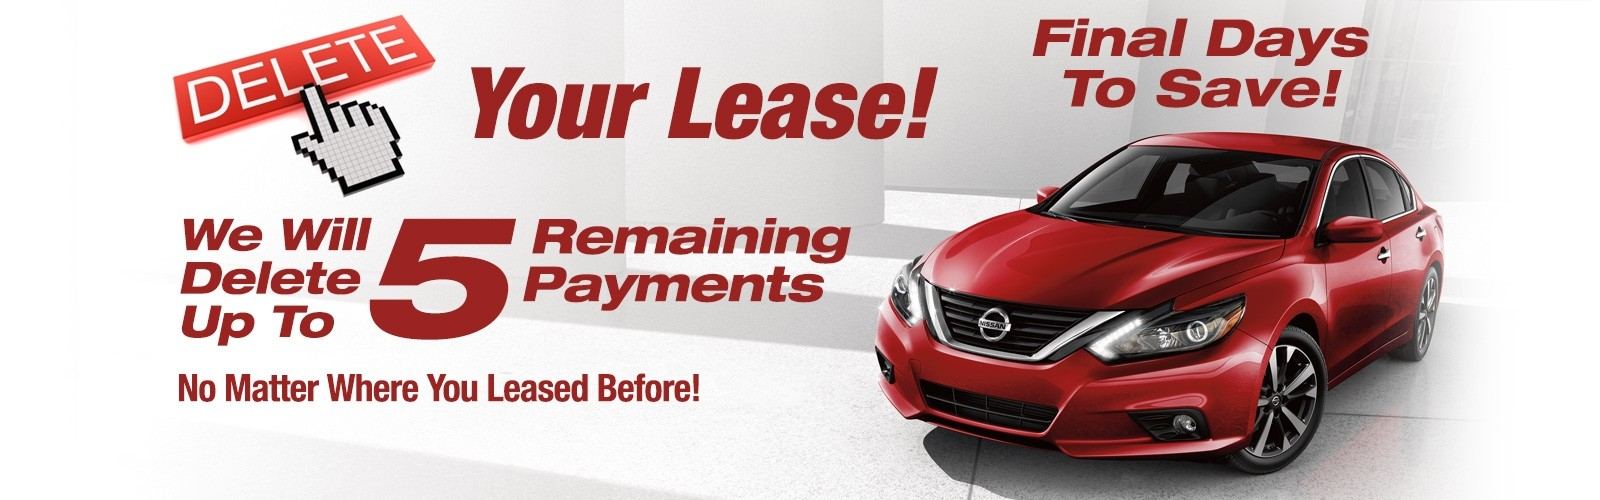 Delete Your Lease | Peters Nissan of Nashua